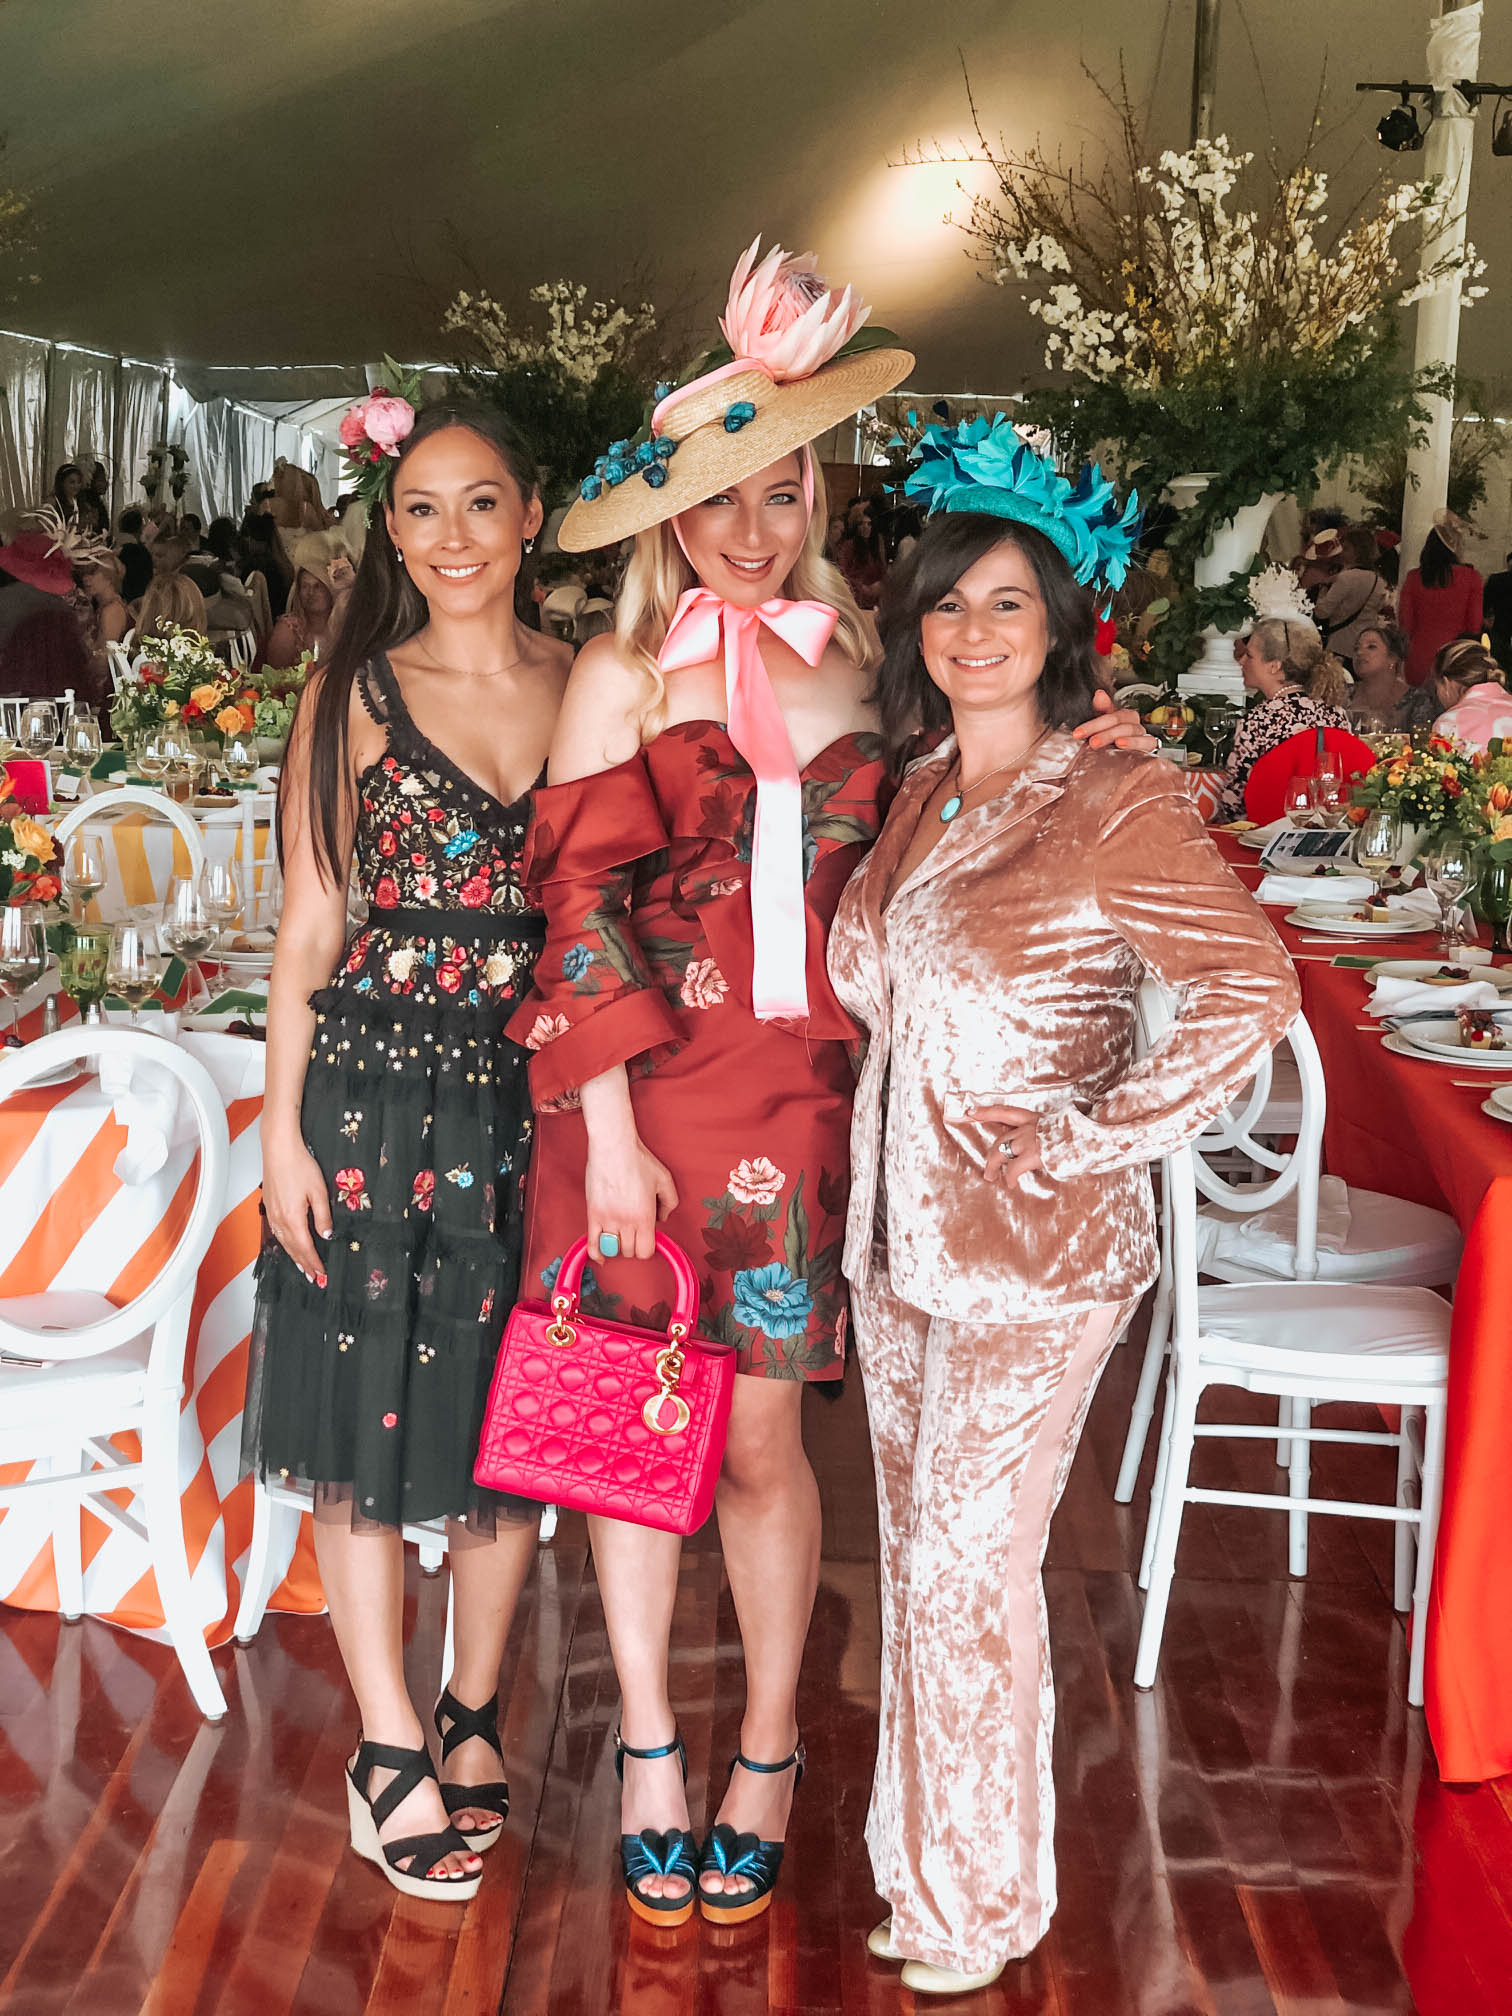 with friends Jessica Diaz and Marsha MacLean